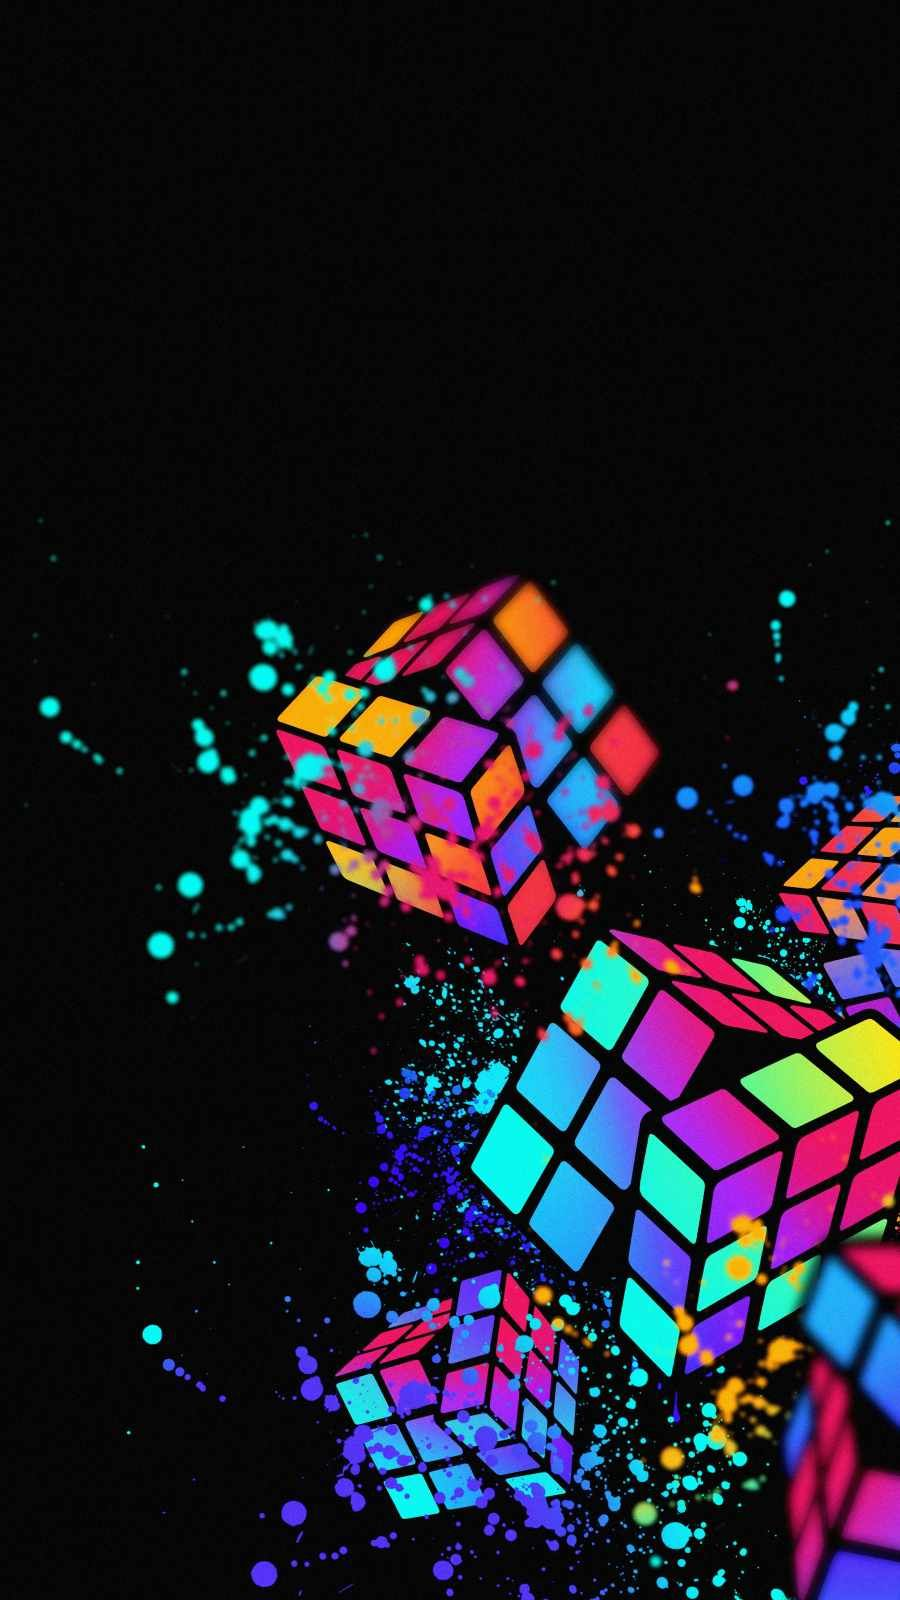 Amoled Puzzle iPhone Wallpaper - iPhone Wallpapers